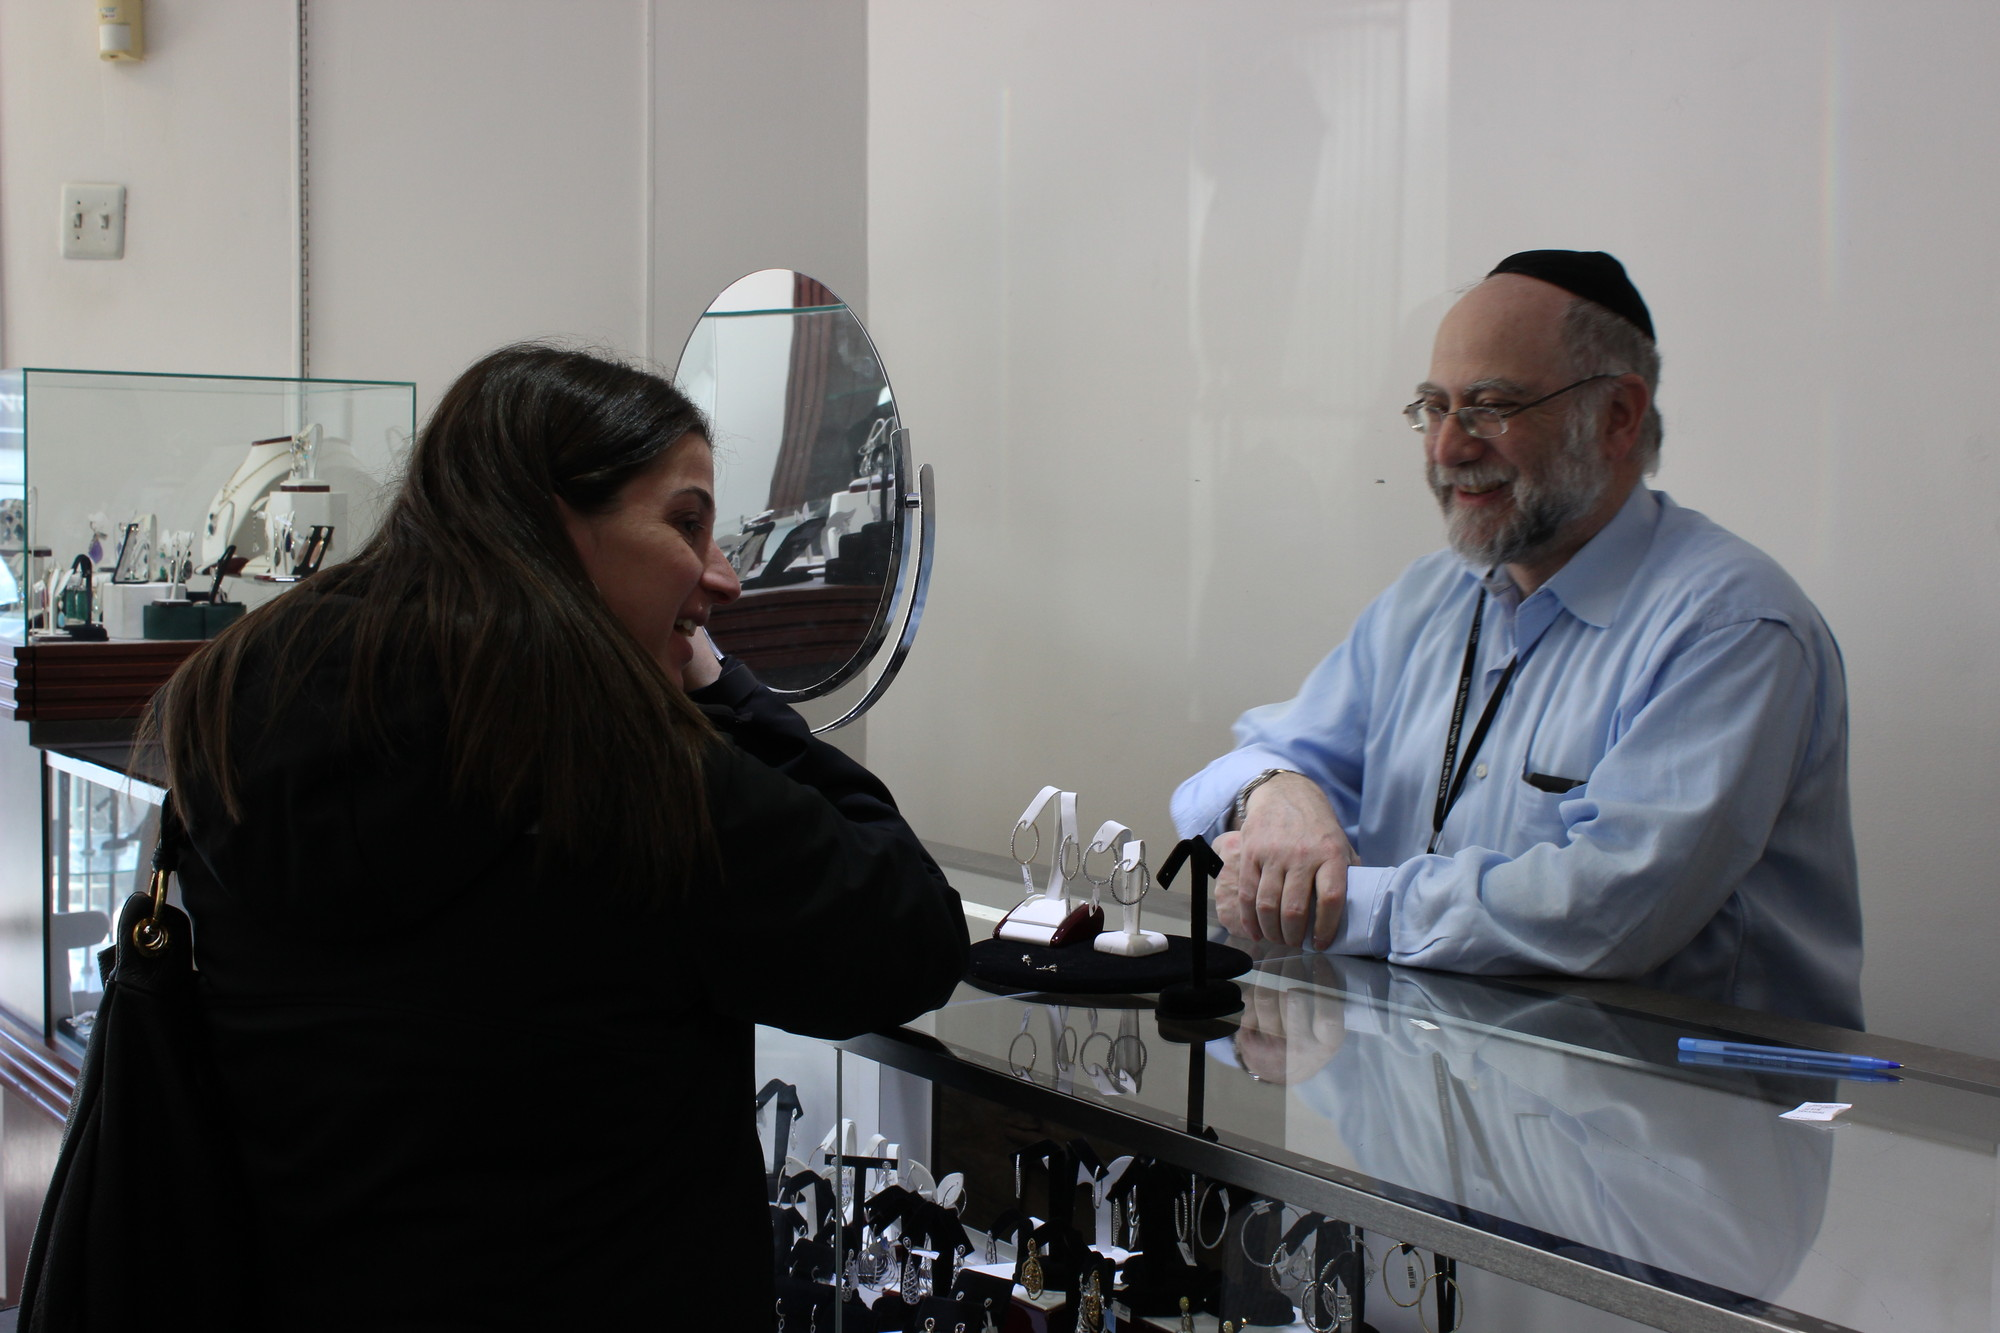 Howard Chait, owner of Goldmine Jewelry in Cedarhurst, assisted Danit Taub of Woodmere as she tried on a pair of hoop earrings.